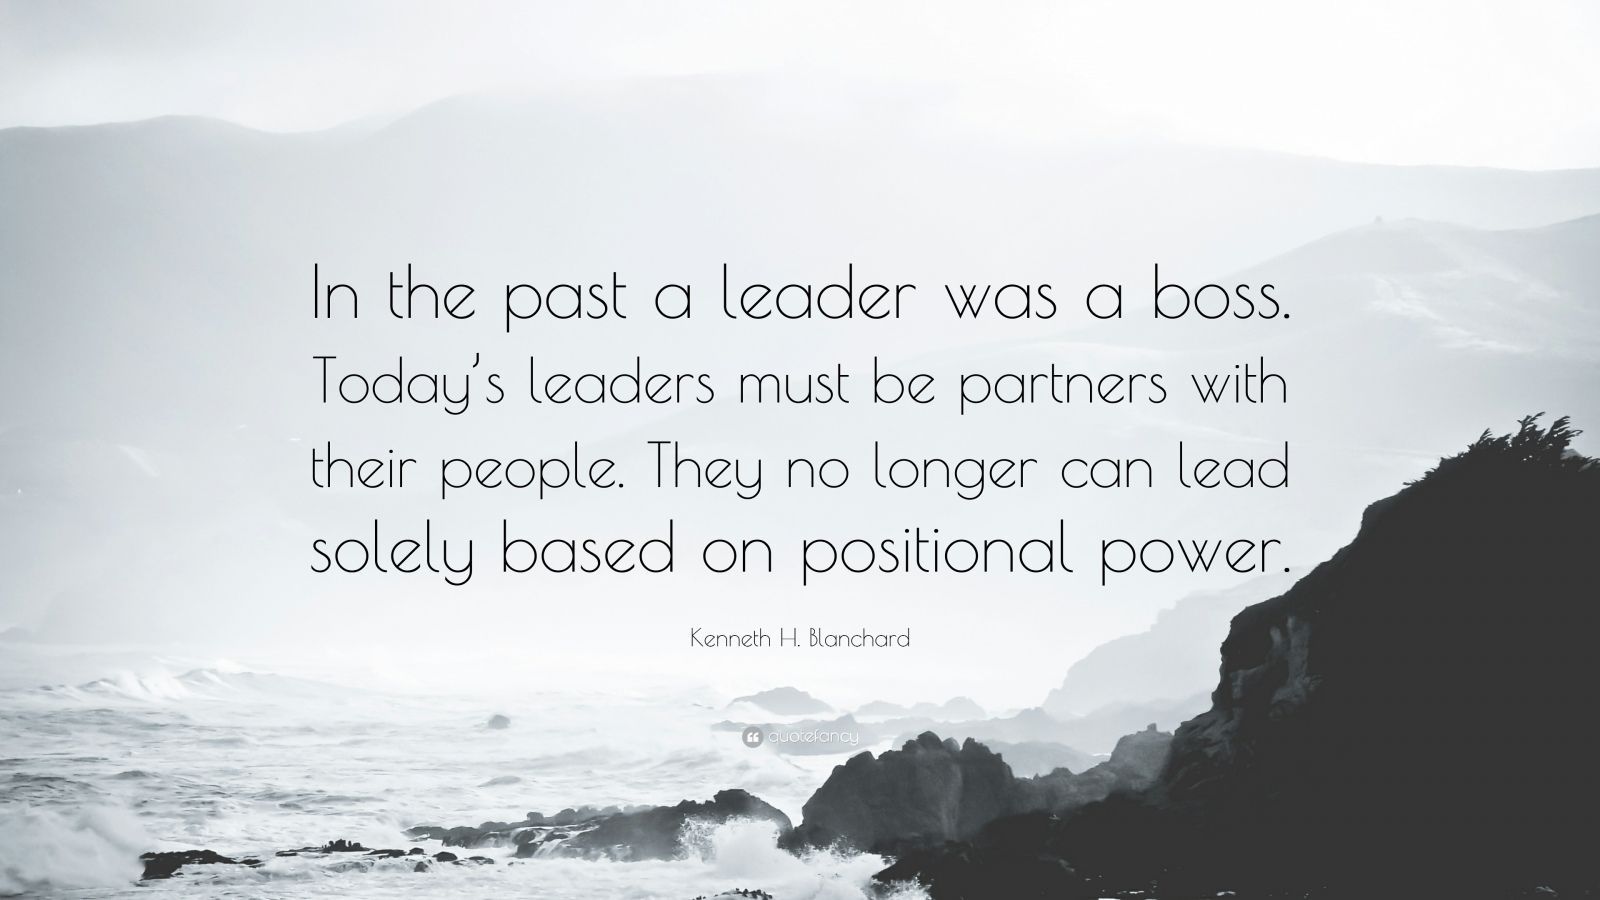 """Kenneth H. Blanchard Quote: """"In the past a leader was a boss. Today's leaders must be partners with their people. They no longer can lead solely based on positional power."""""""